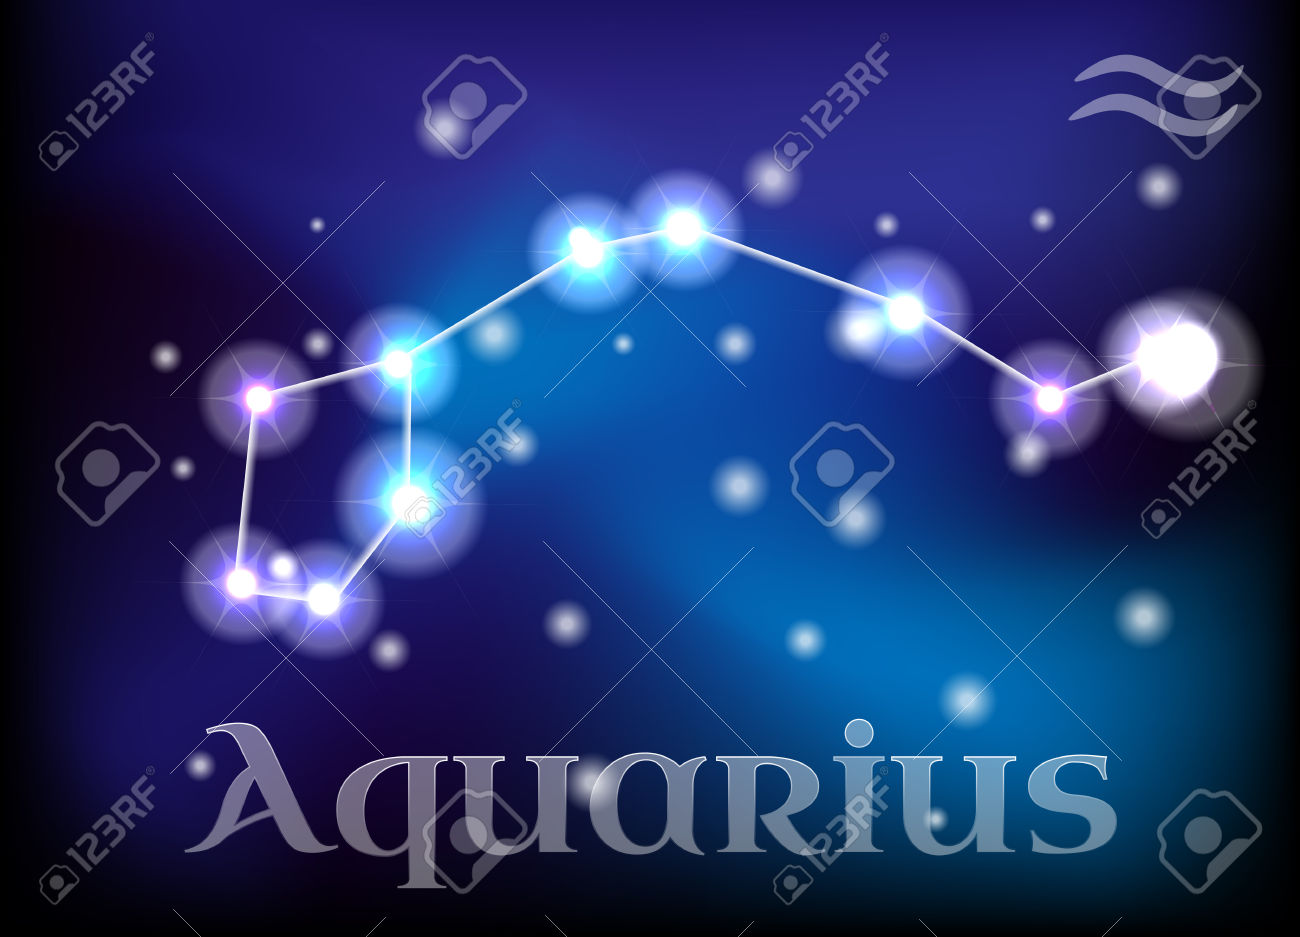 Aquarius Horoscope Or Zodiac Or Constellation Vector Illustration.